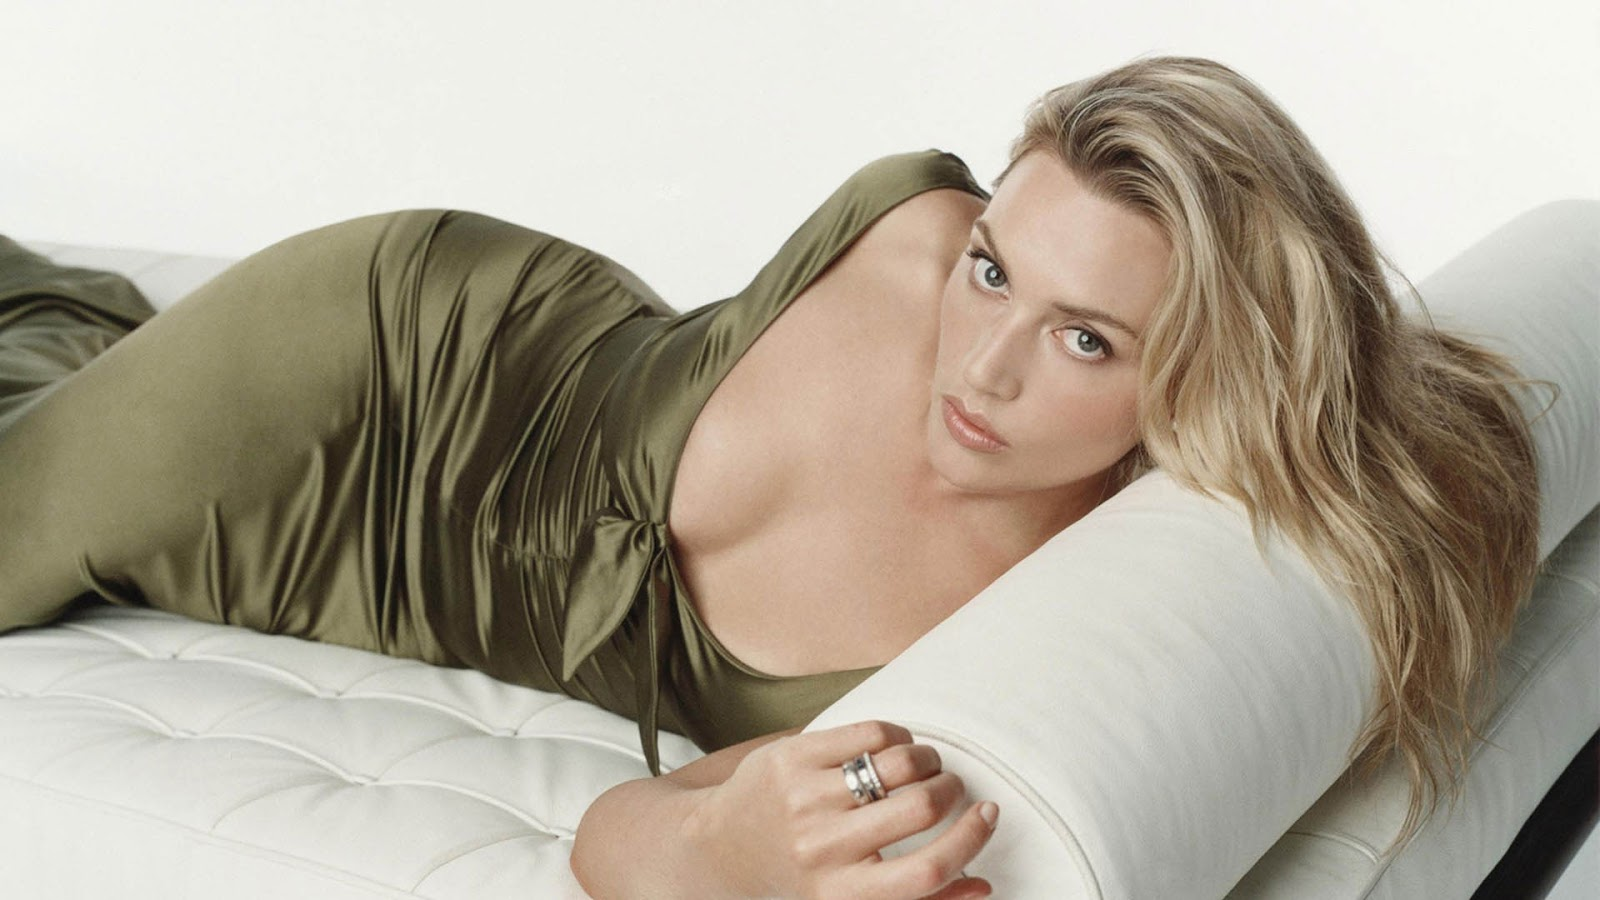 Wallpapers South indian Actress HD Wallpapers: Kate Winslet HD